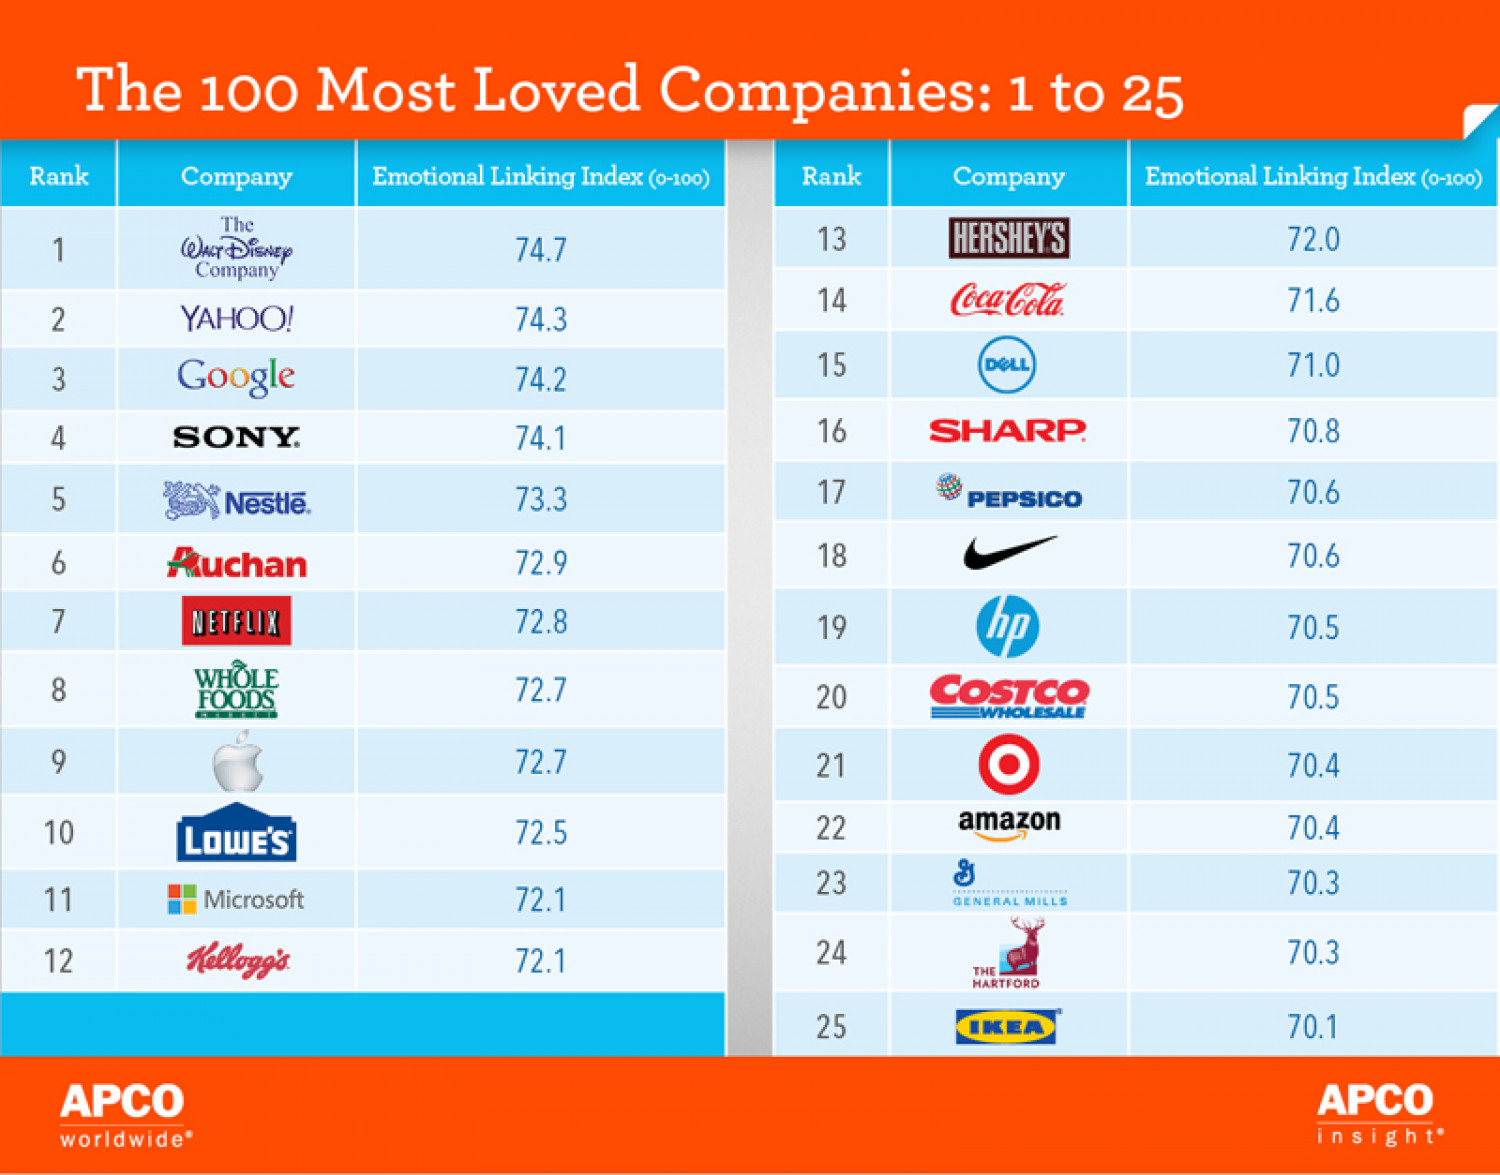 The Top 25 Most Loved Companies Infographic